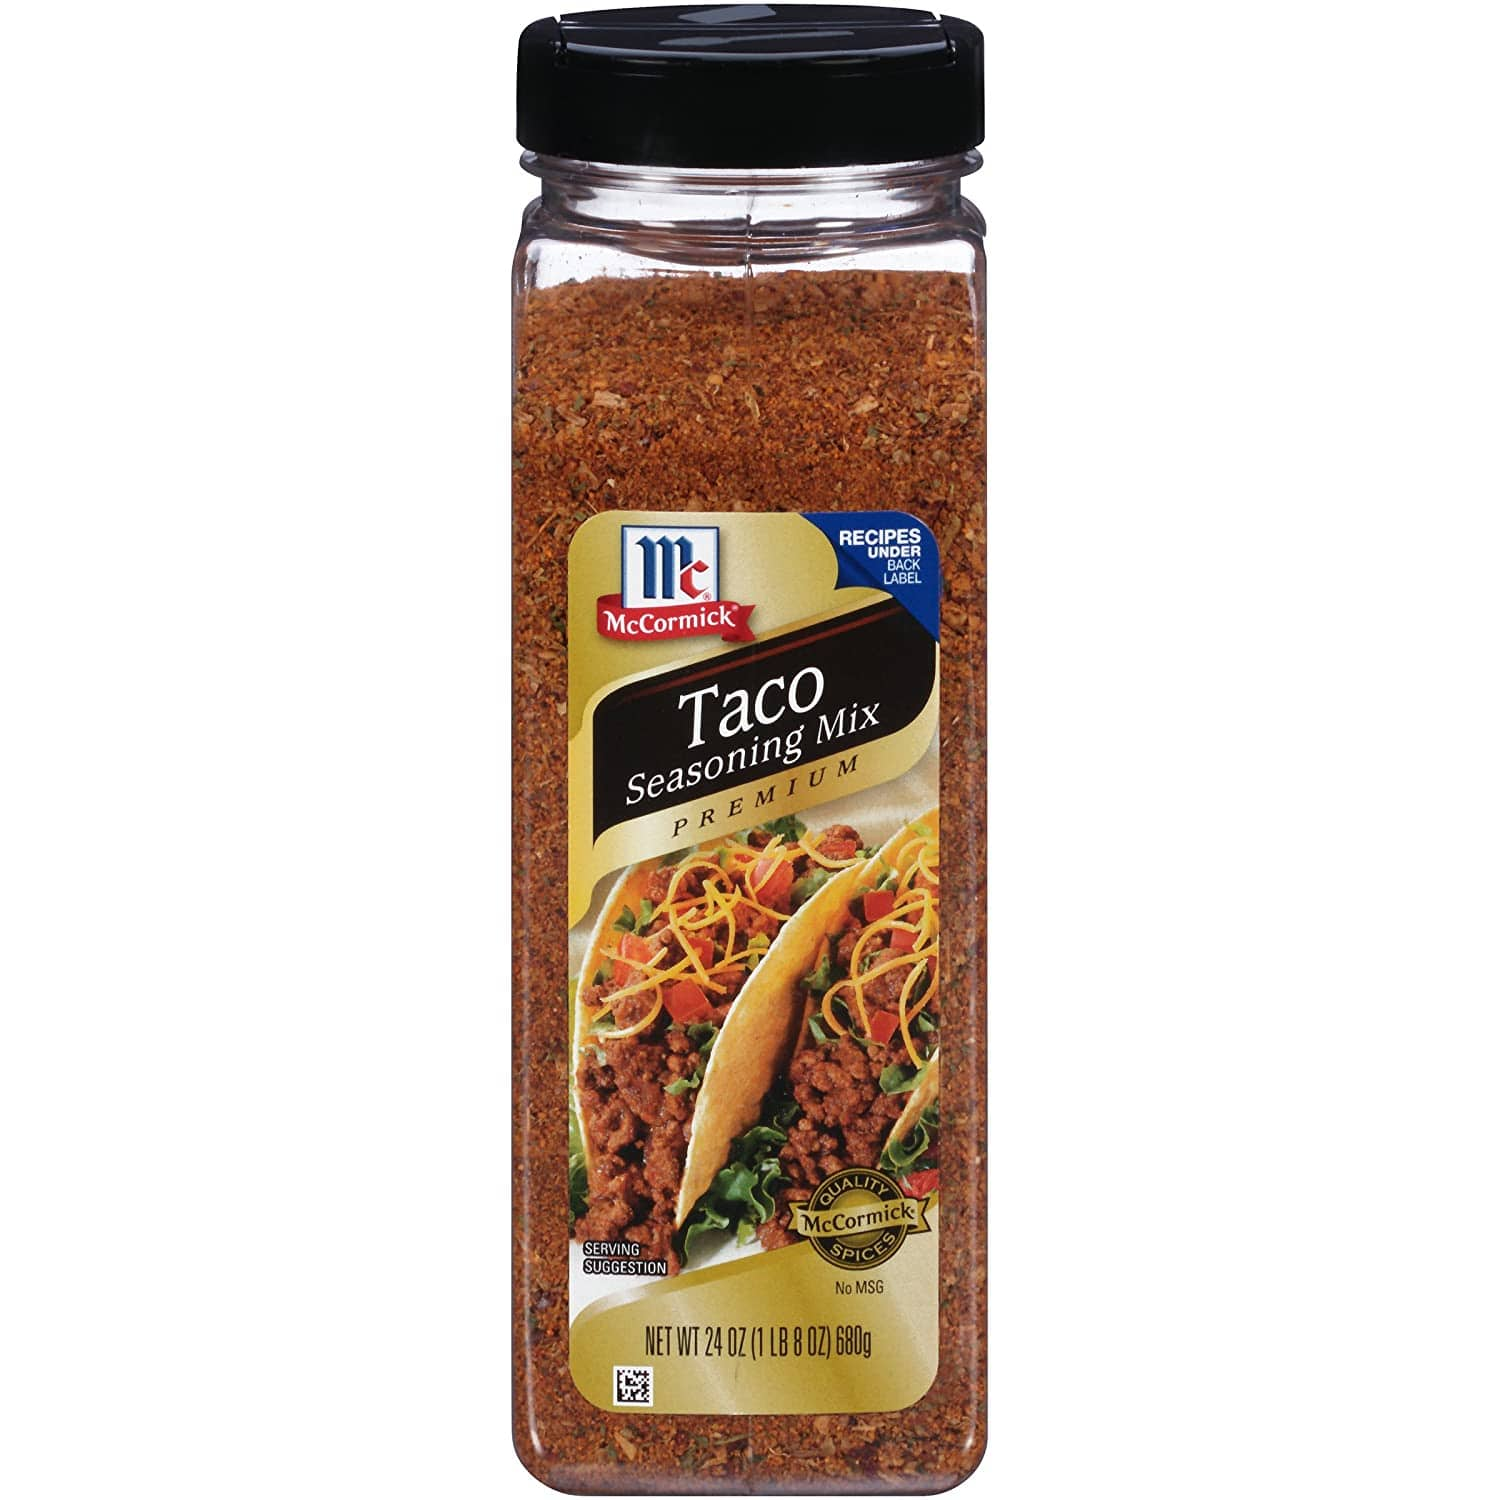 24oz McCormick Premium Taco Seasoning Mix: As low as $3.99 w/S&S